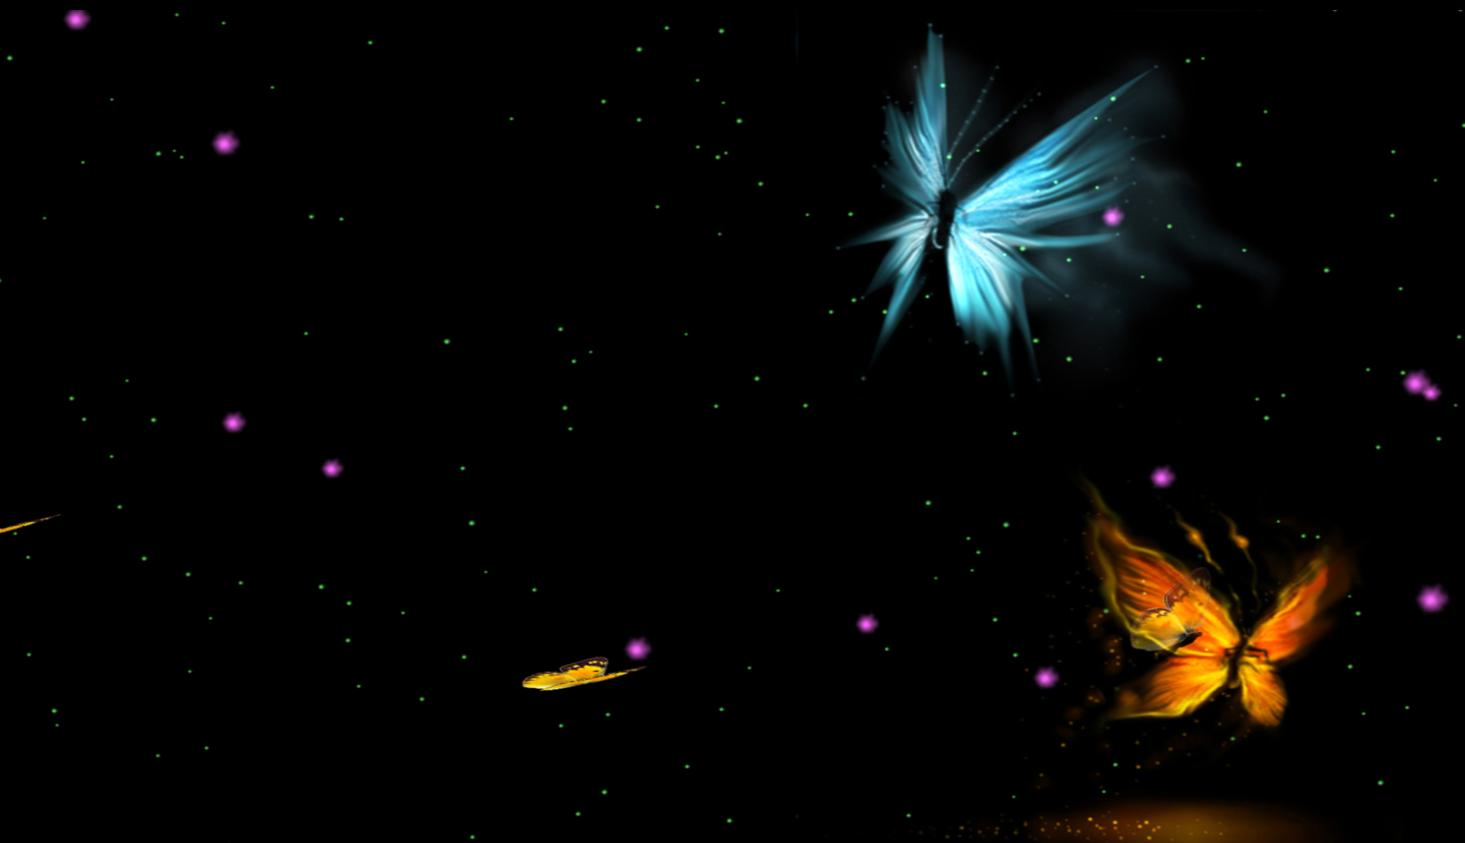 Fantastic Butterfly 1.2 Screensaver 1.0 full